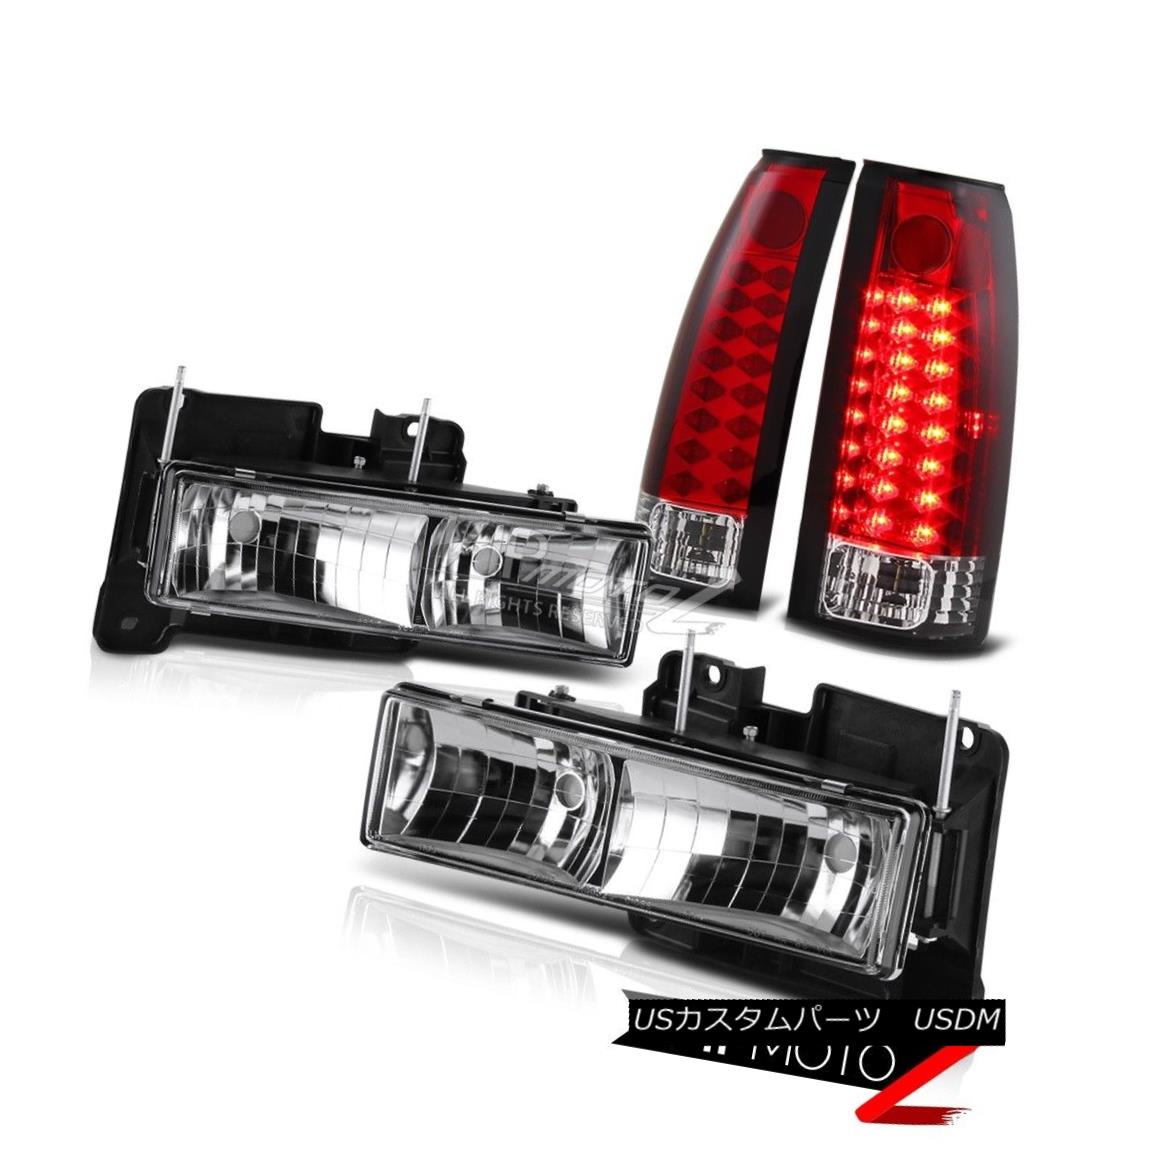 Front Signal Bumper Lights For 98 99 00 Toyota Tacoma 4wd Black Headlights